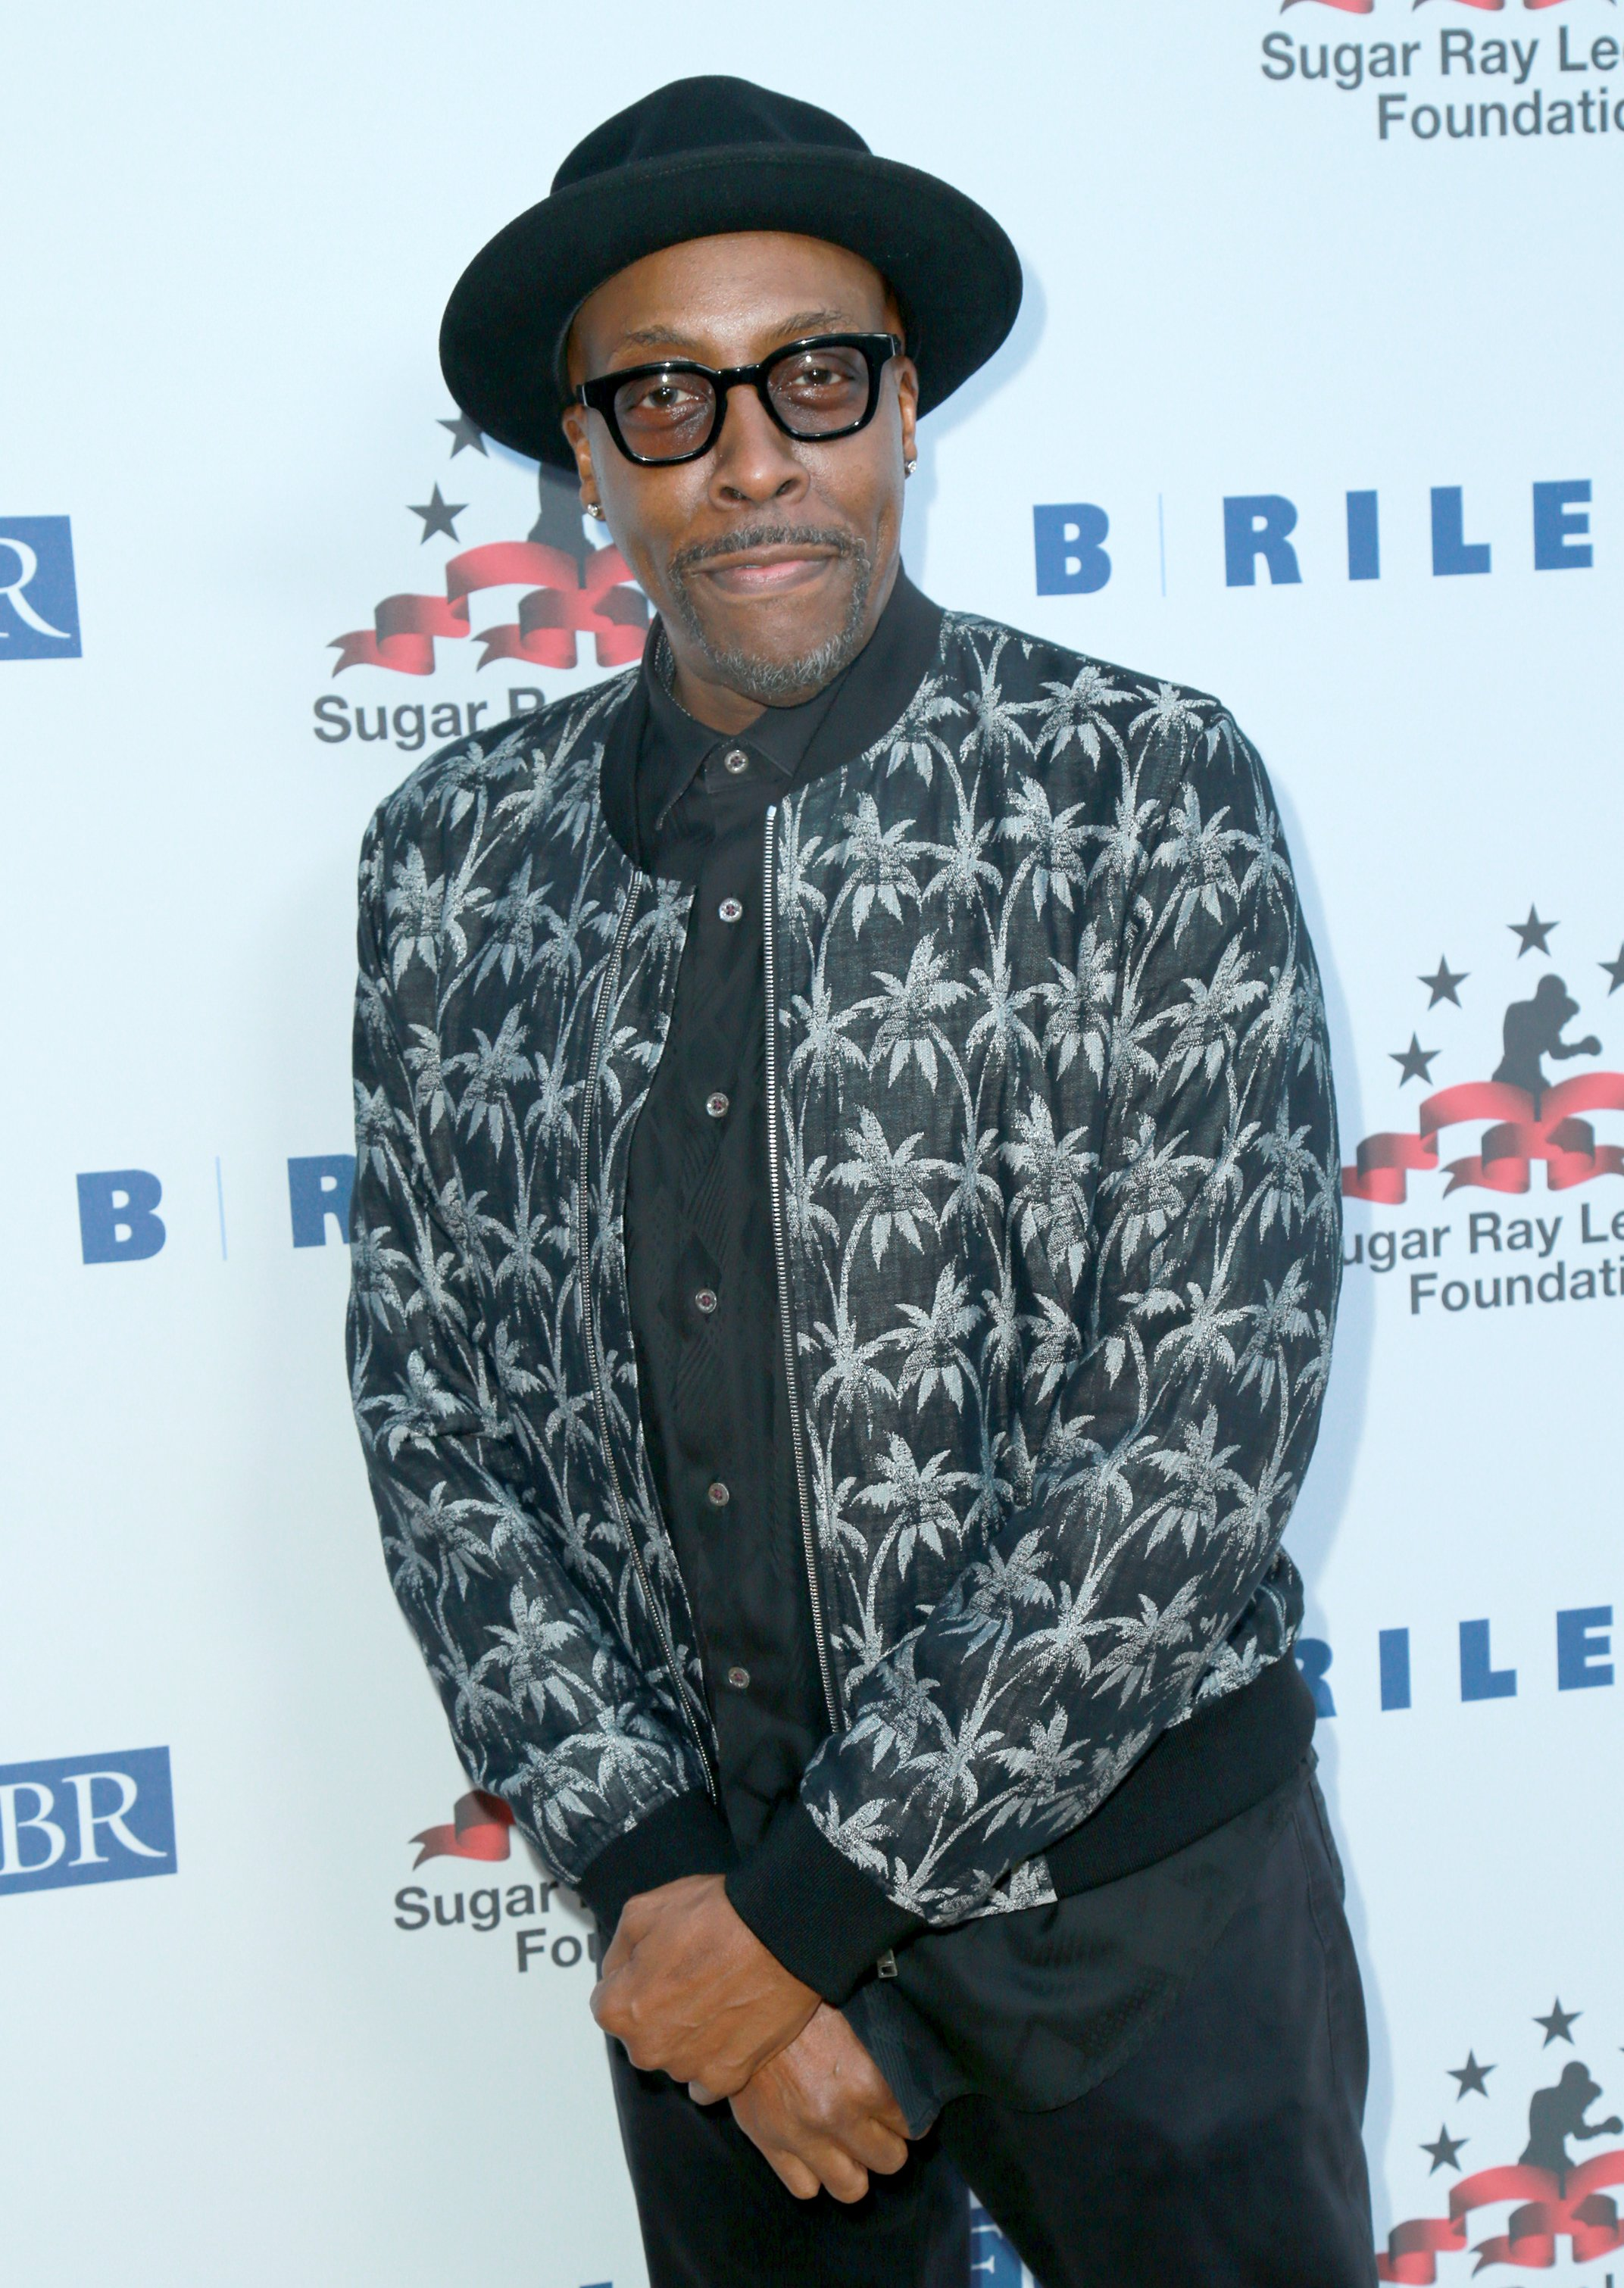 """Arsenio Hall at the Sugar Ray Leonard Foundation 9th Annual """"Big Fighters, Big Cause"""" Charity event on May 23, 2018 in Santa Monica, California. 